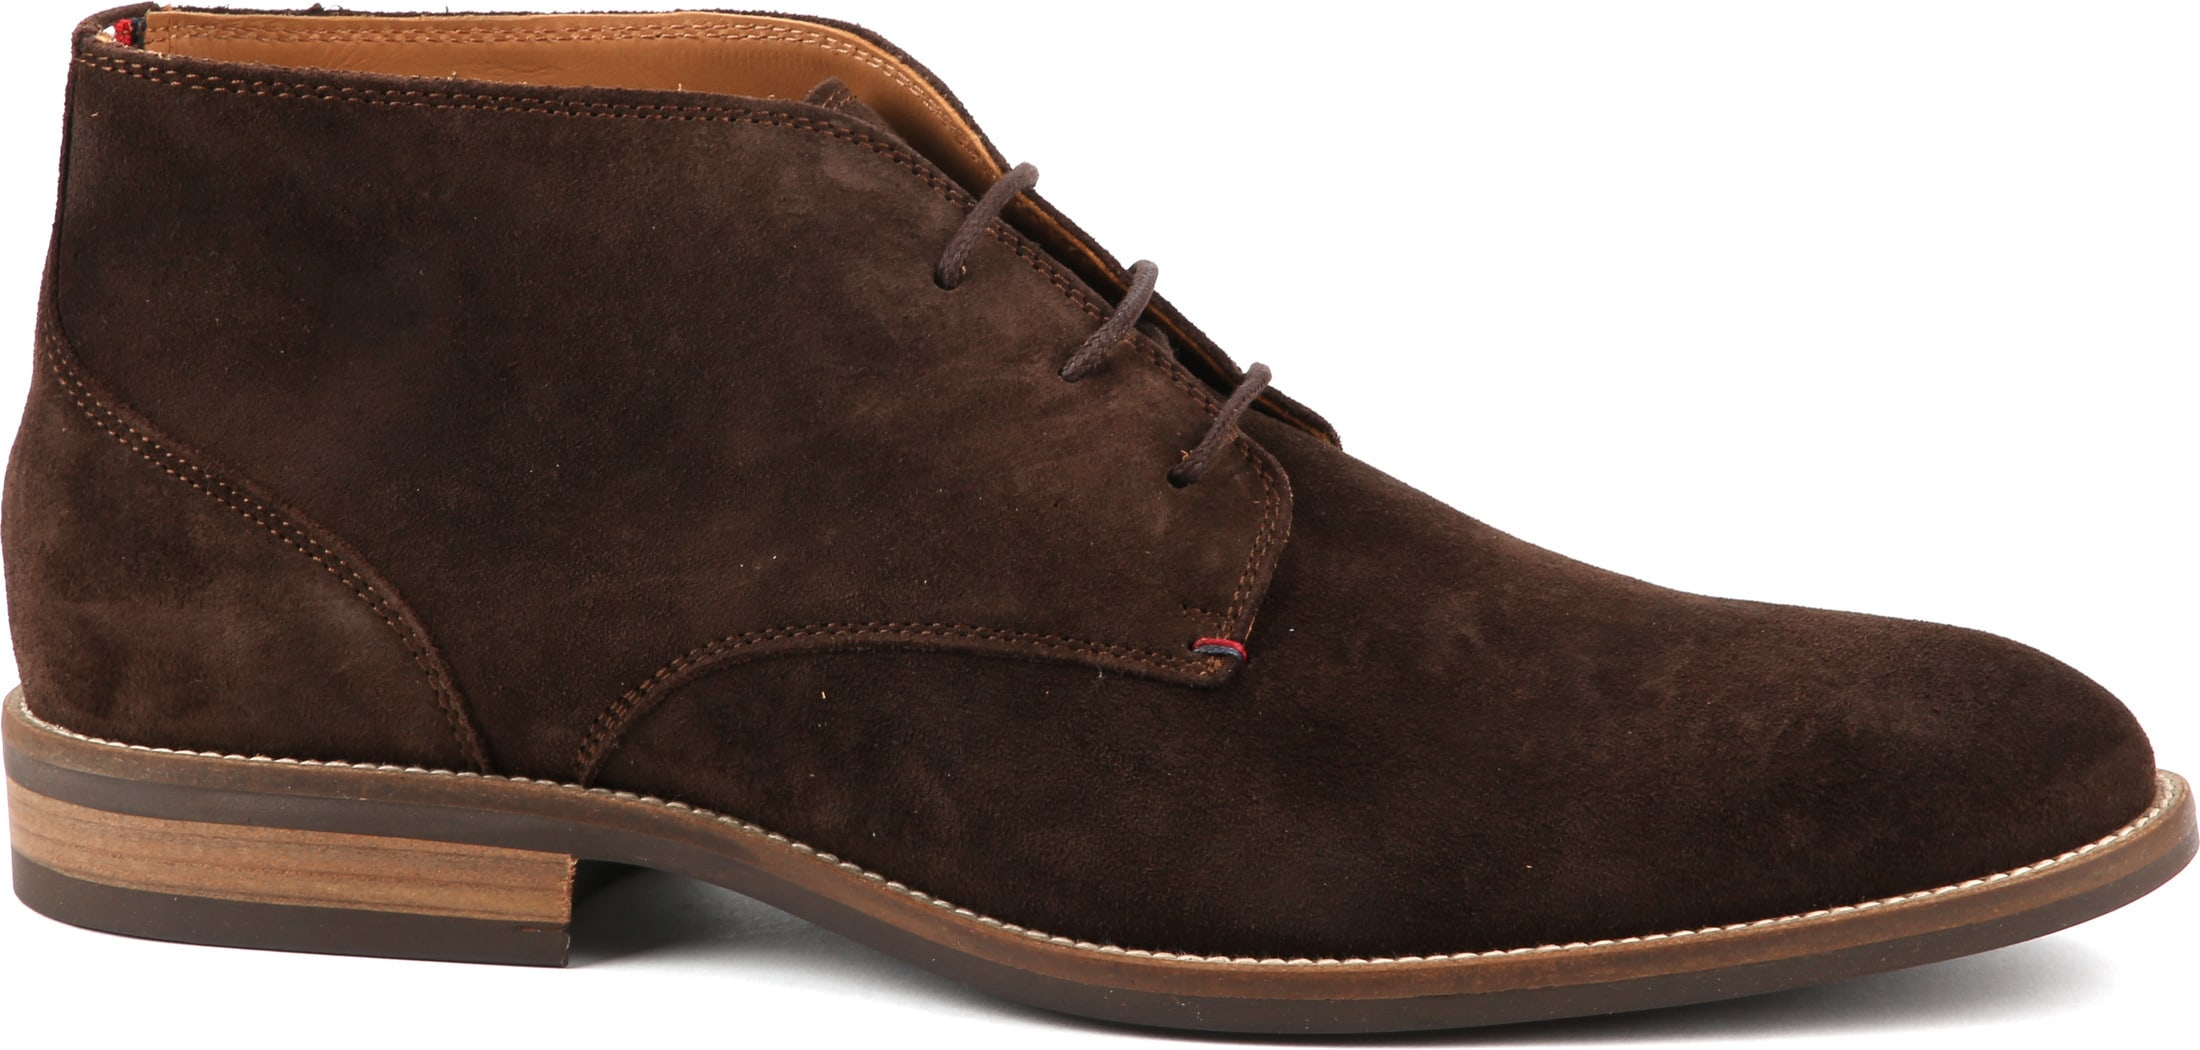 Tommy Hilfiger Suede Boot Coffee foto 0